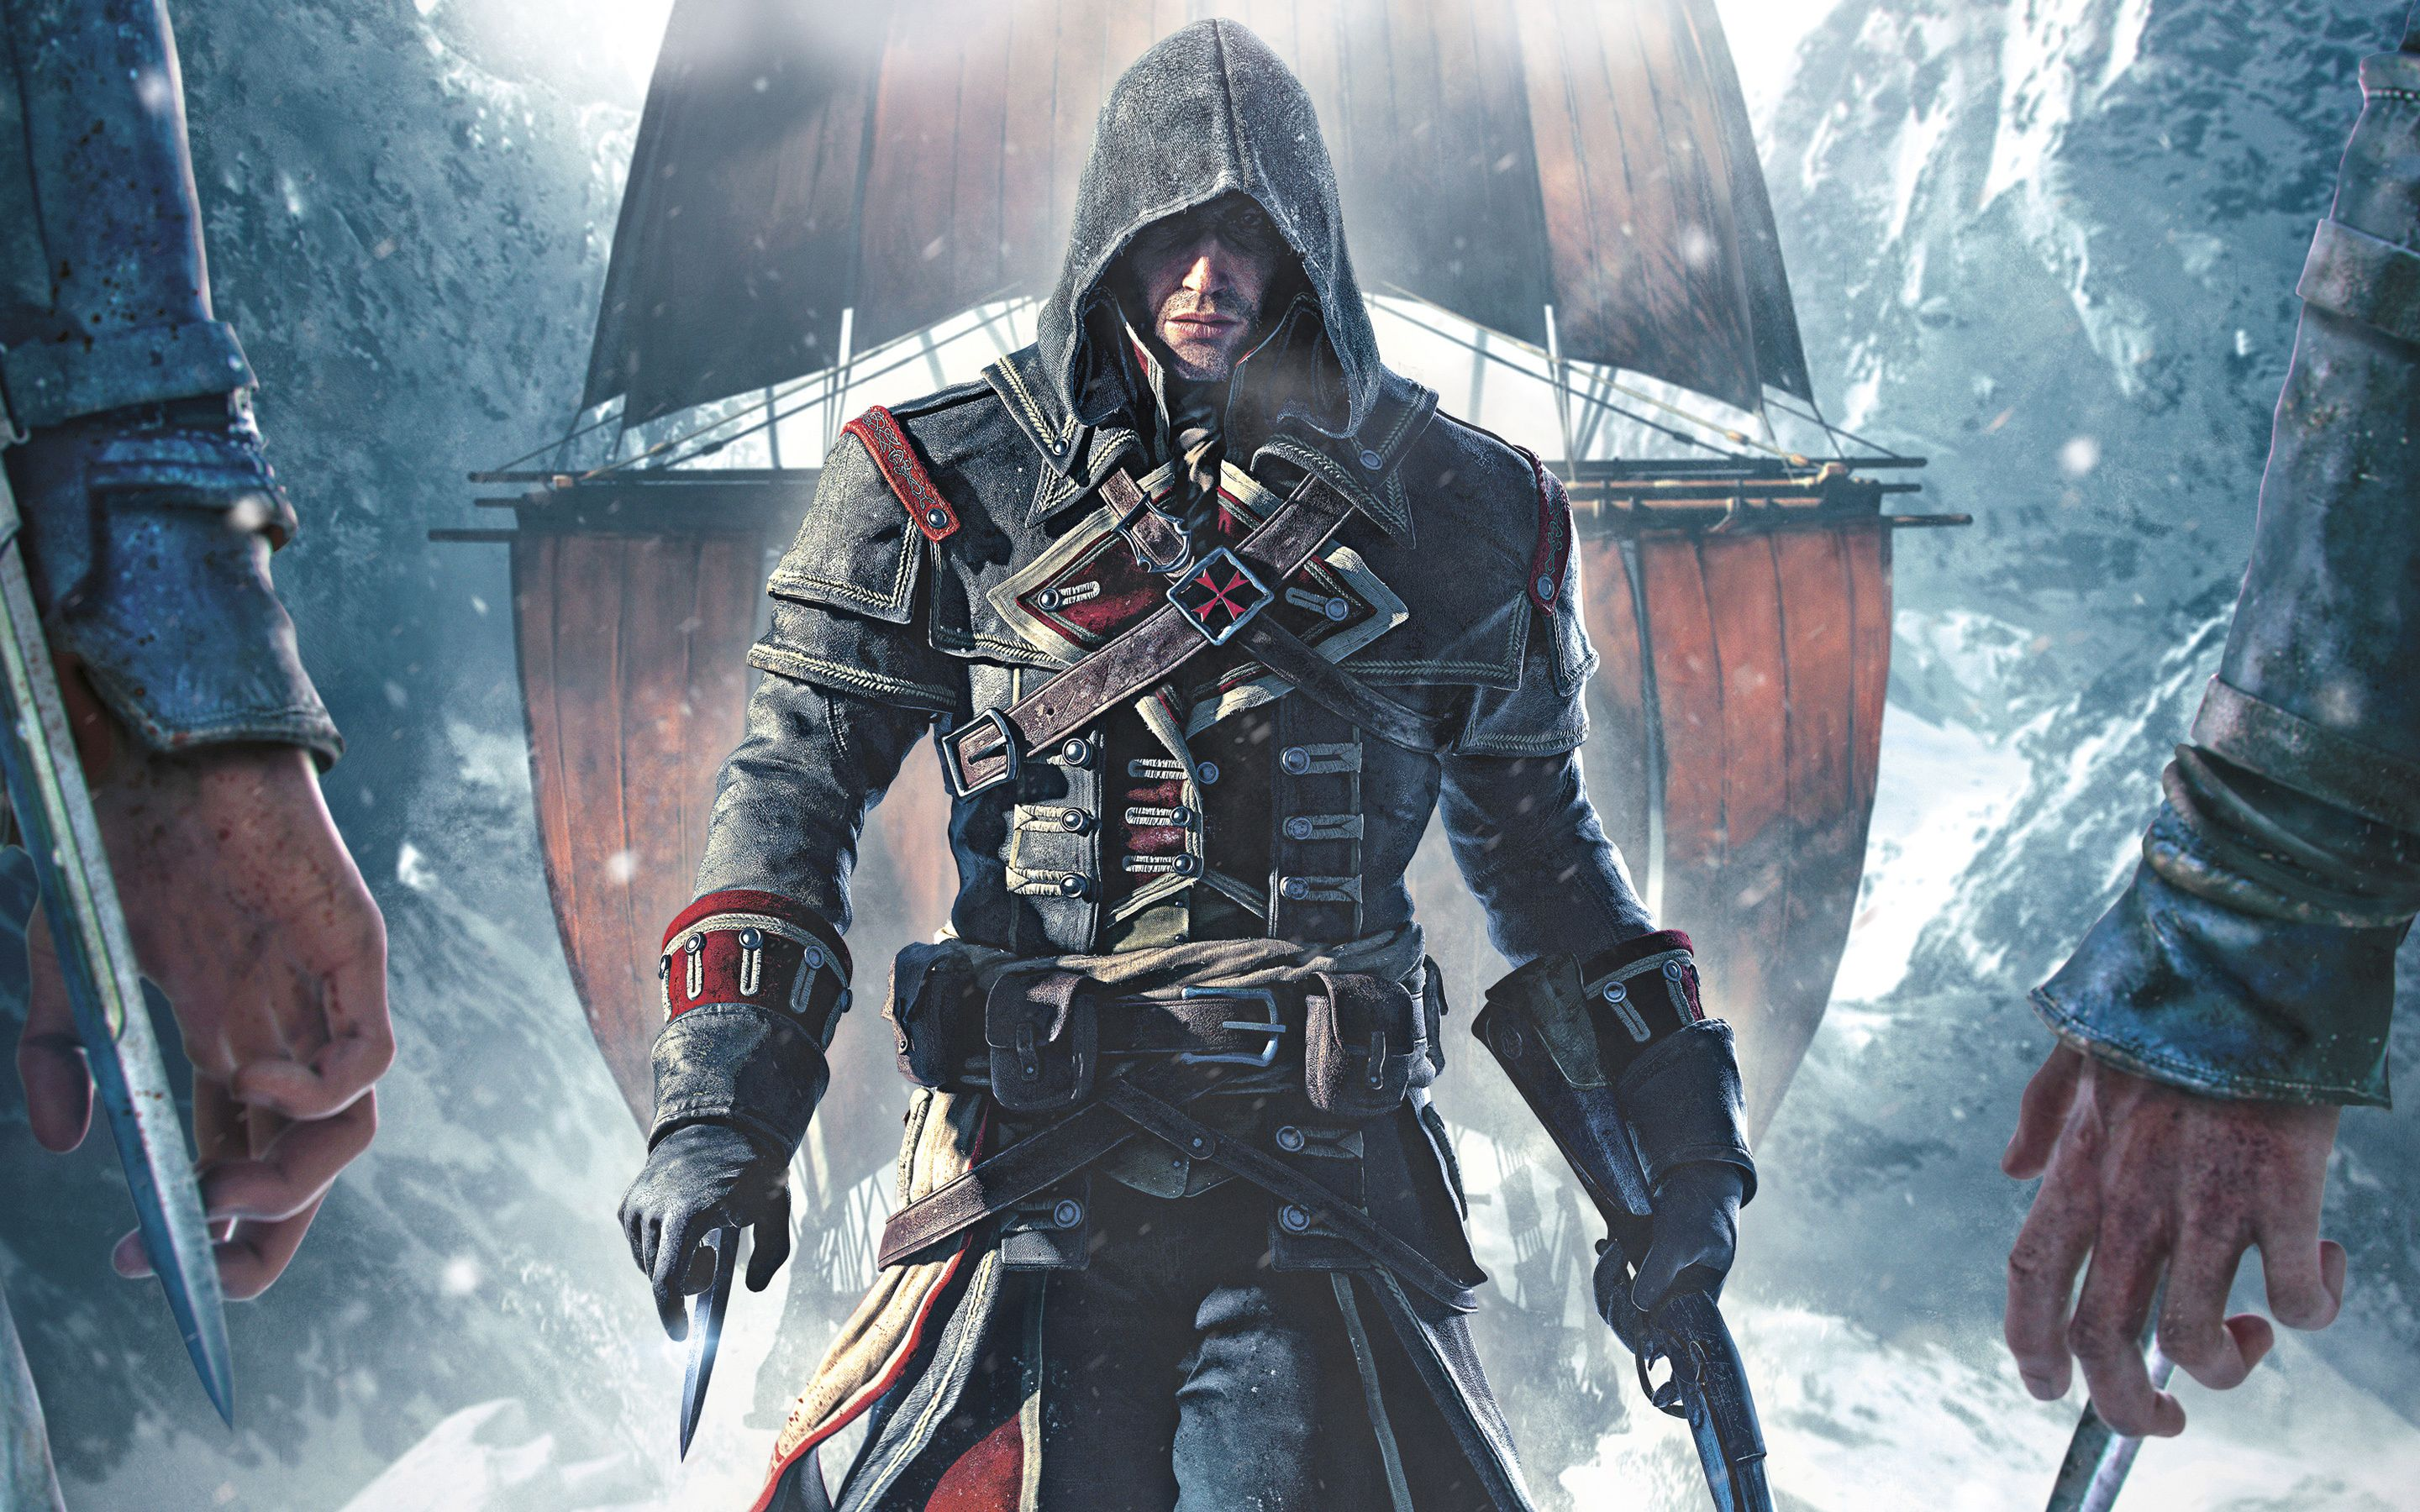 Assassin's Creed Rogue Comes out Tomorrow, Check out the